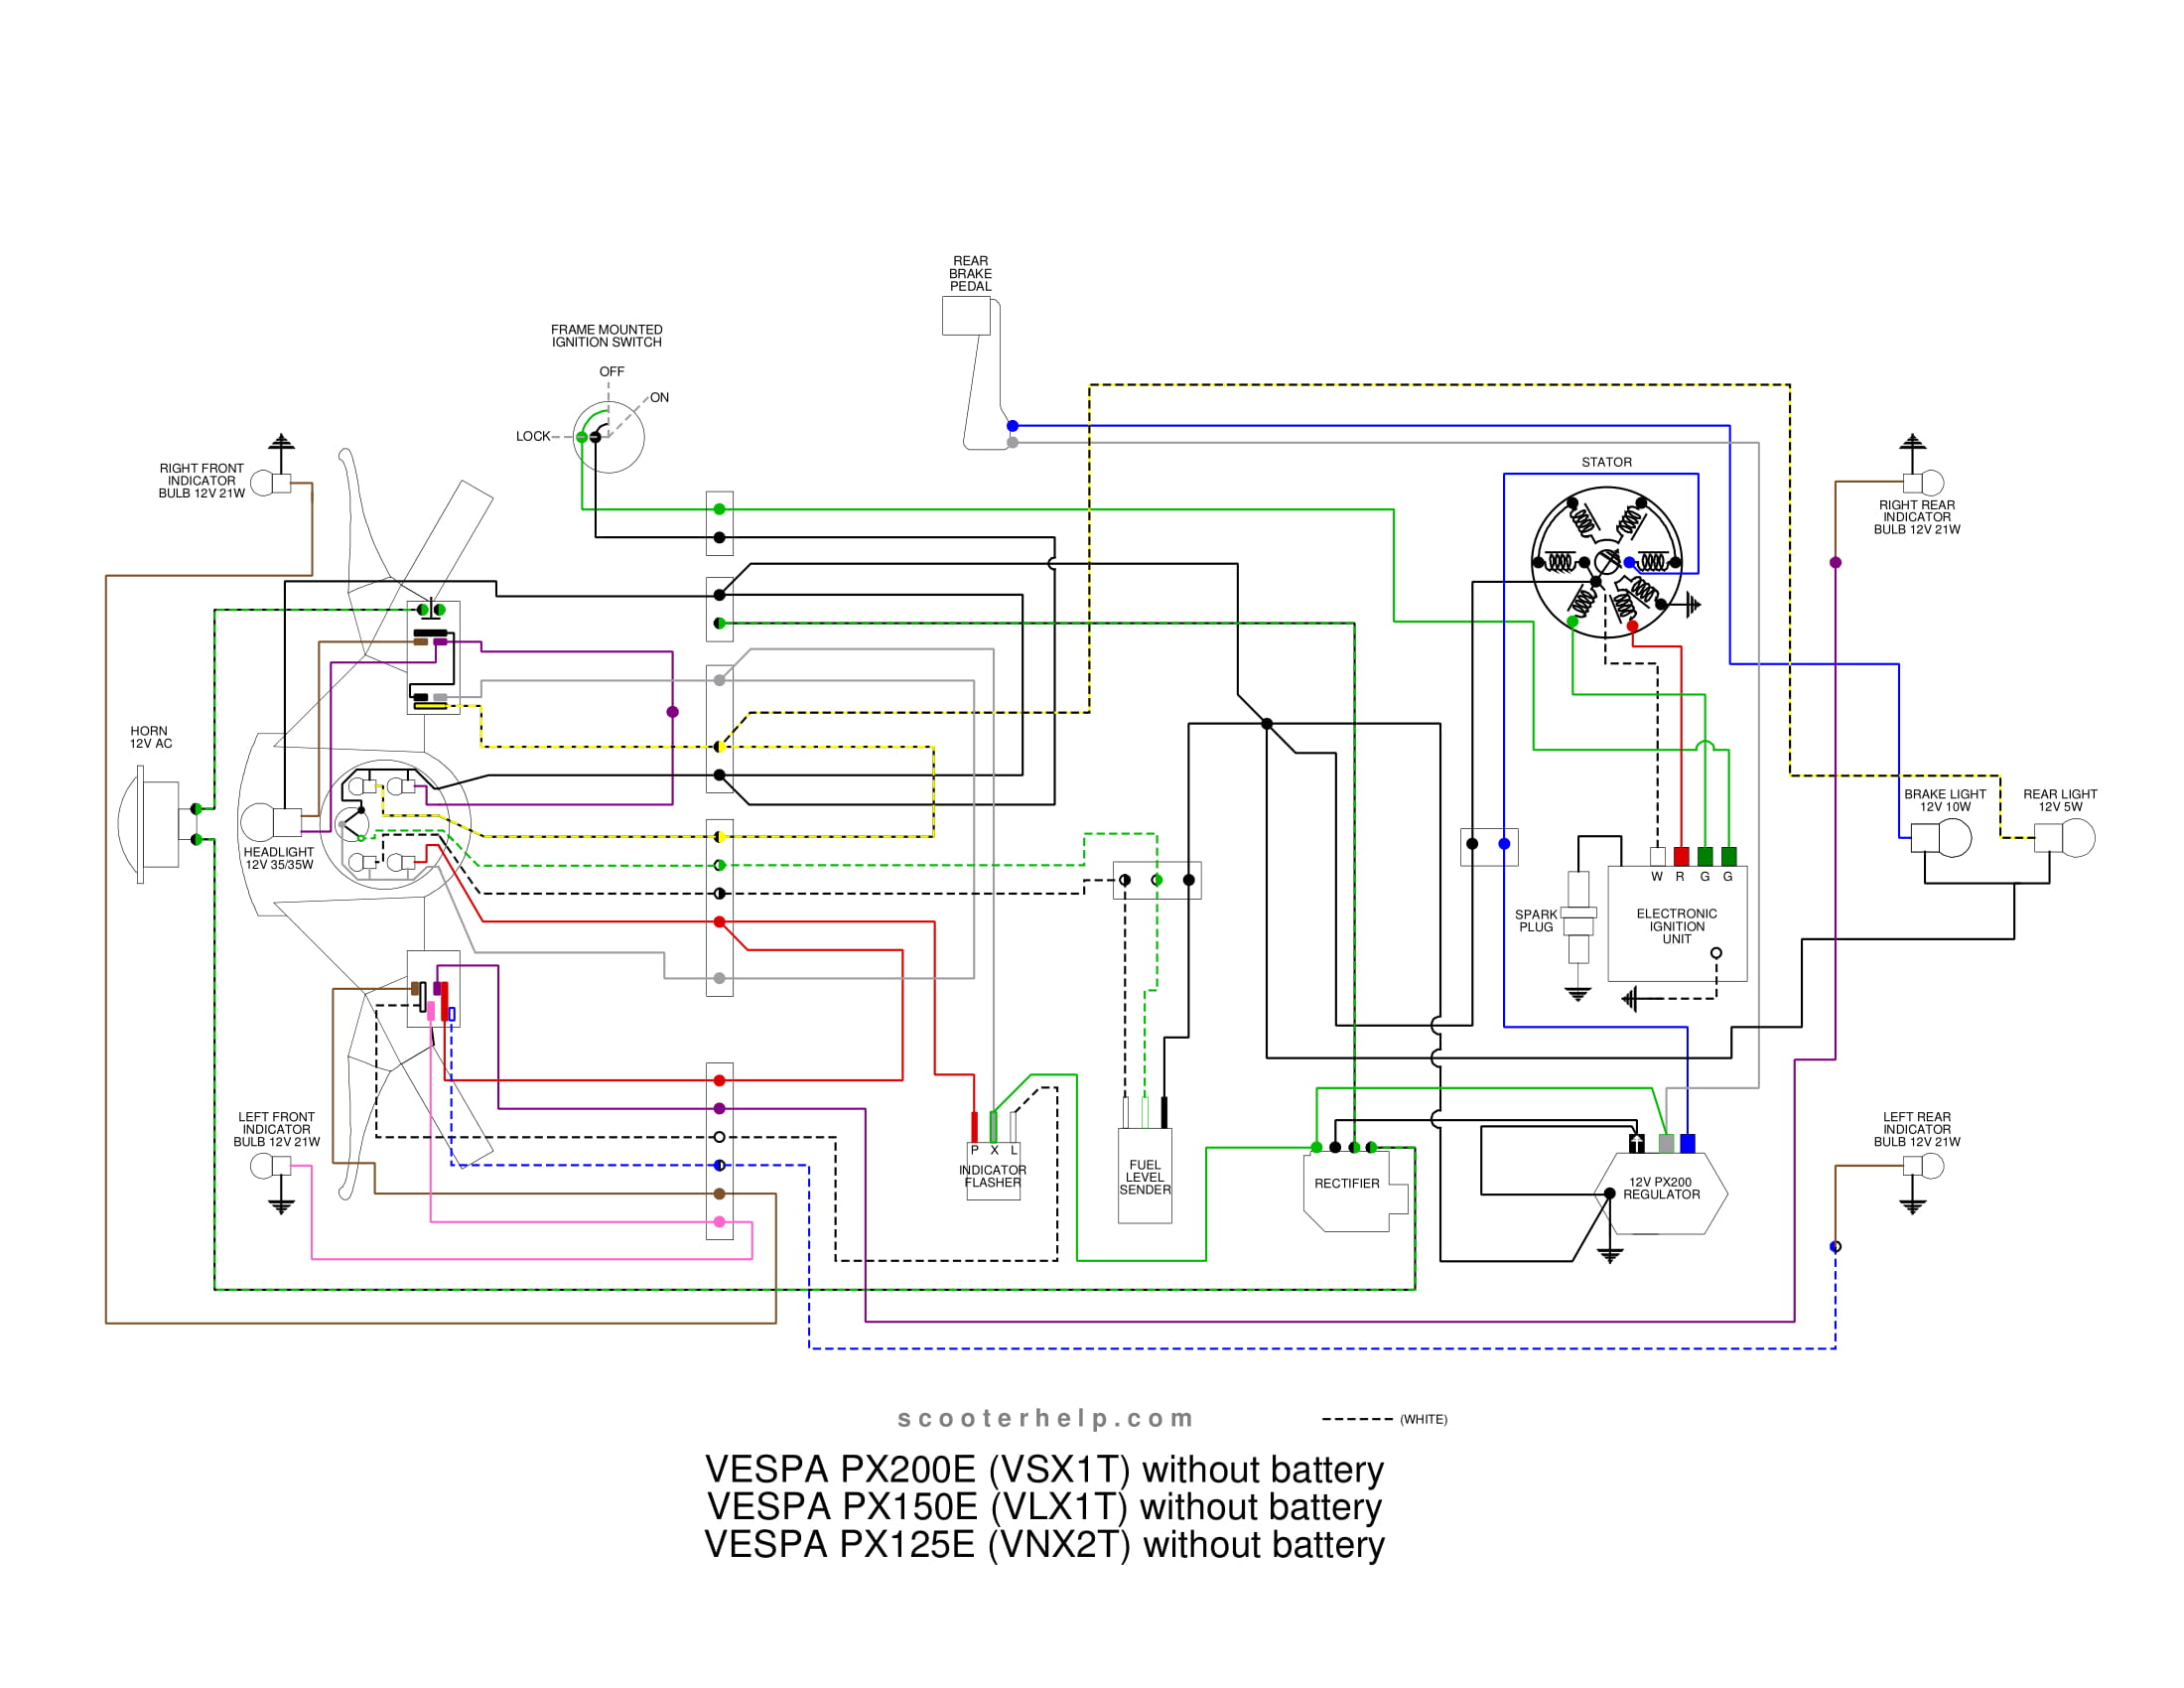 VSX1T.px200e.nobatt scooter help px125e (vnx2t) vespa p125x wiring diagram at edmiracle.co